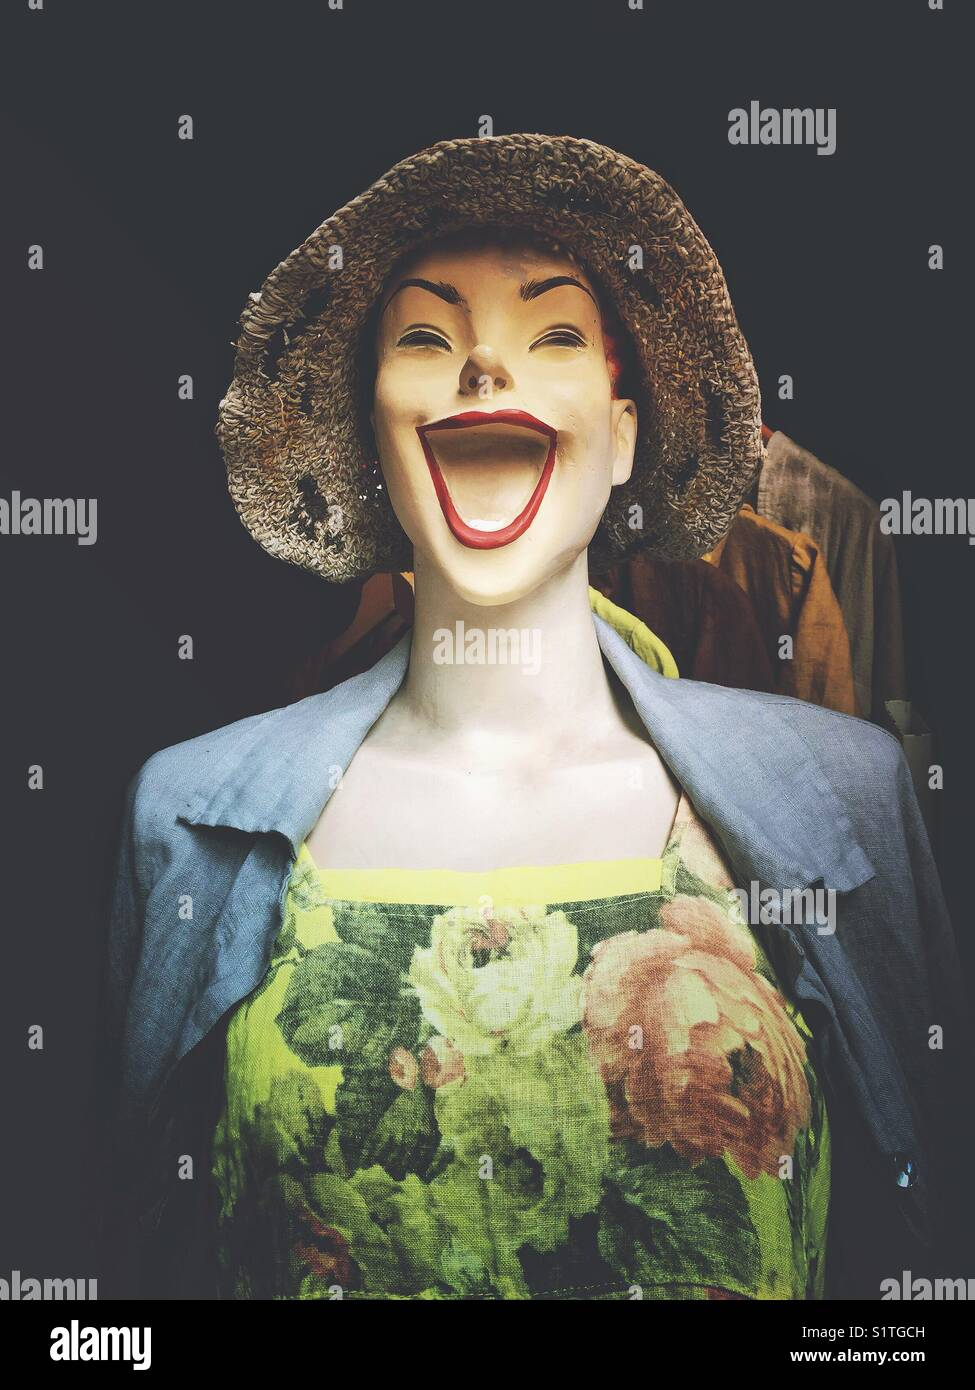 Fun laughing female mannequin - Stock Image